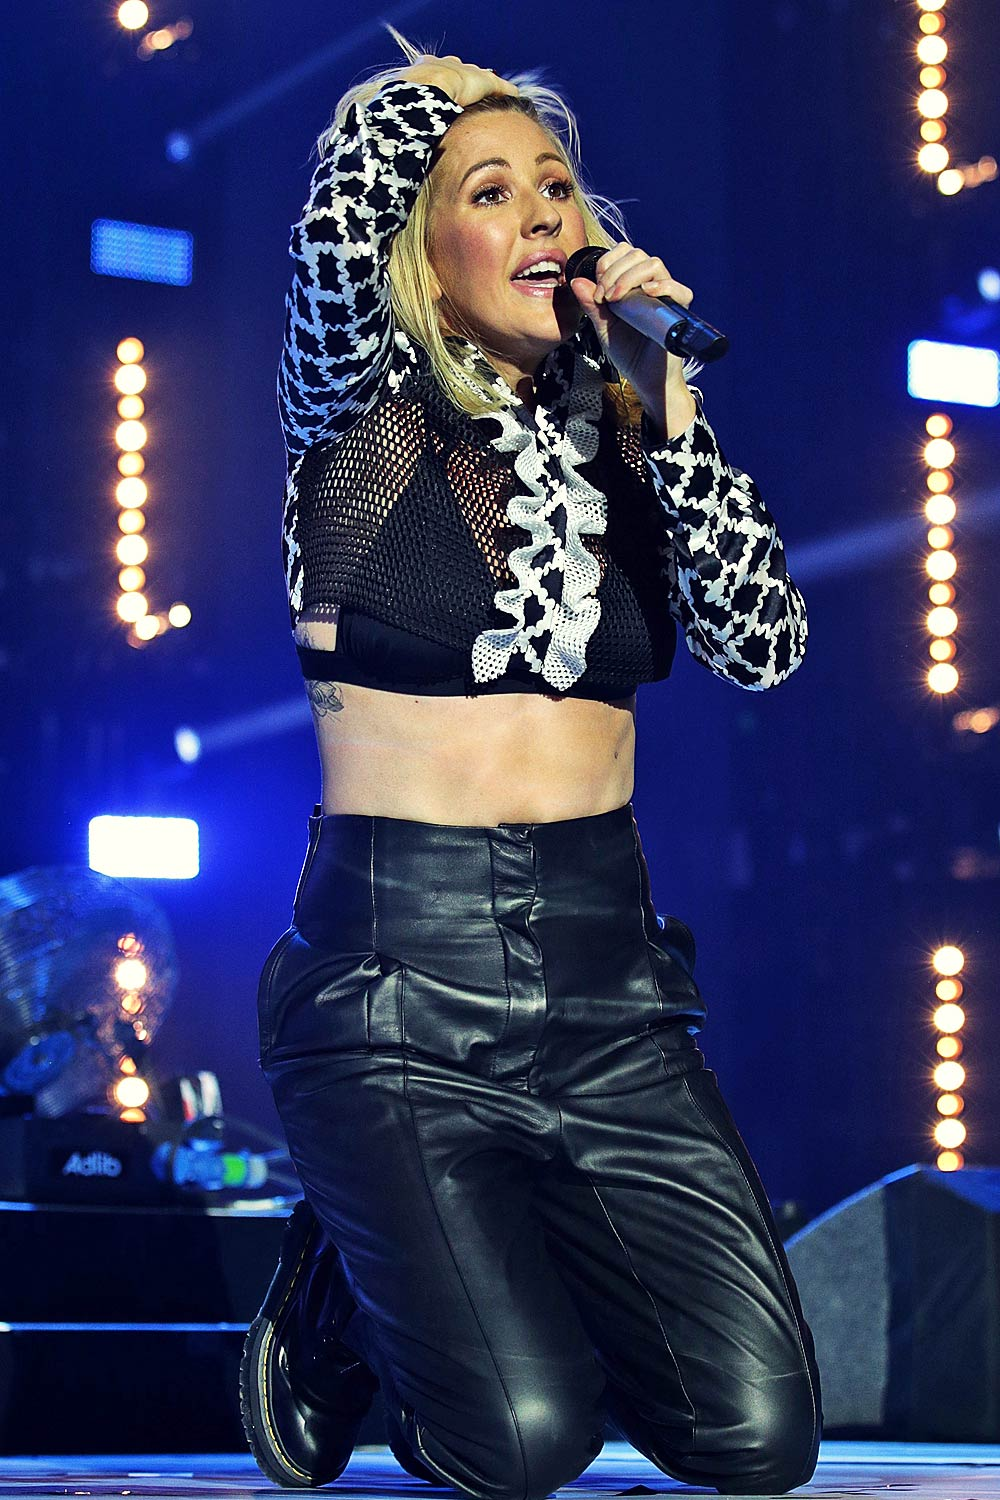 Ellie Goulding Performs At Jingle Bell Ball 2015 Leather